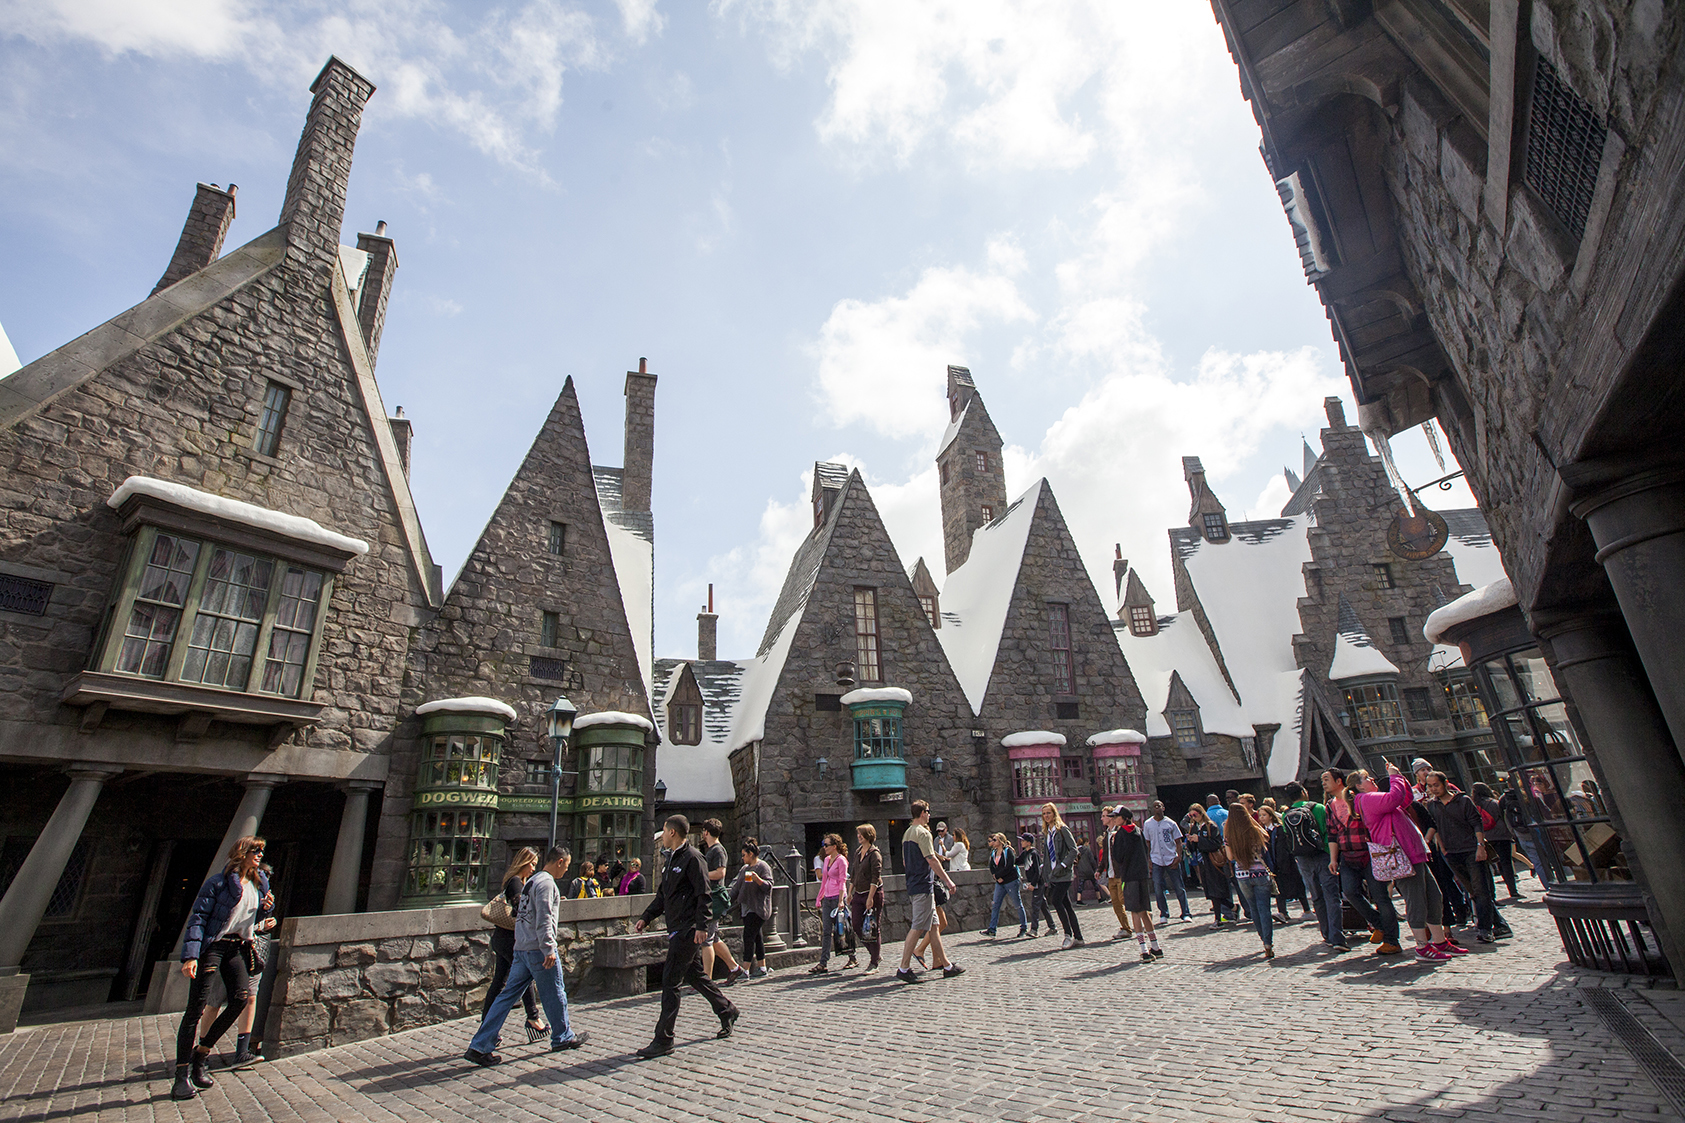 Warner Bros. Entertainment says Avada Kedavra to Aurora's Harry Potter festival